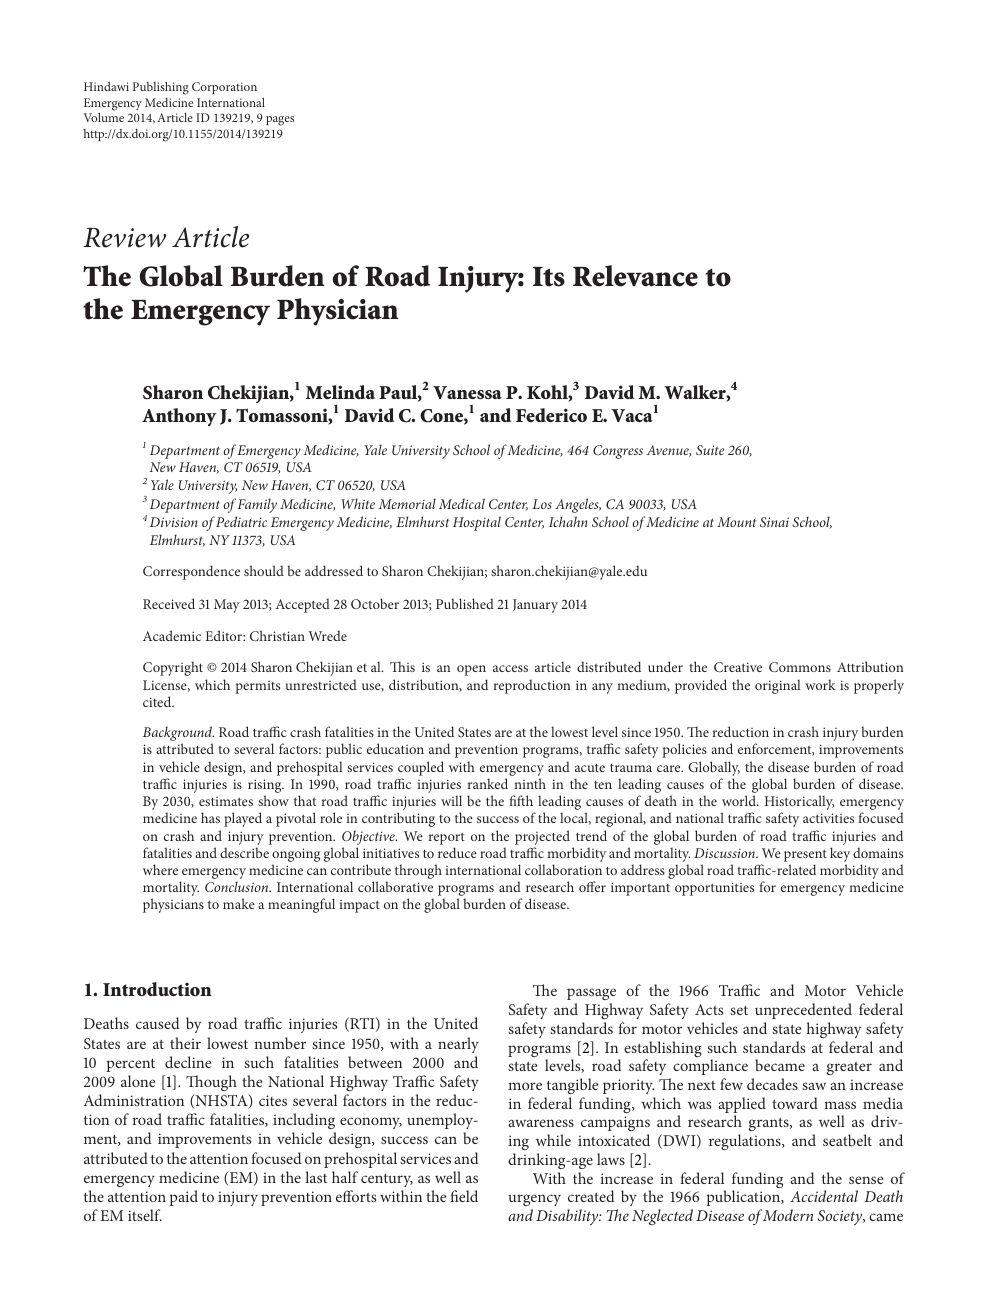 The Global Burden of Road Injury: Its Relevance to the